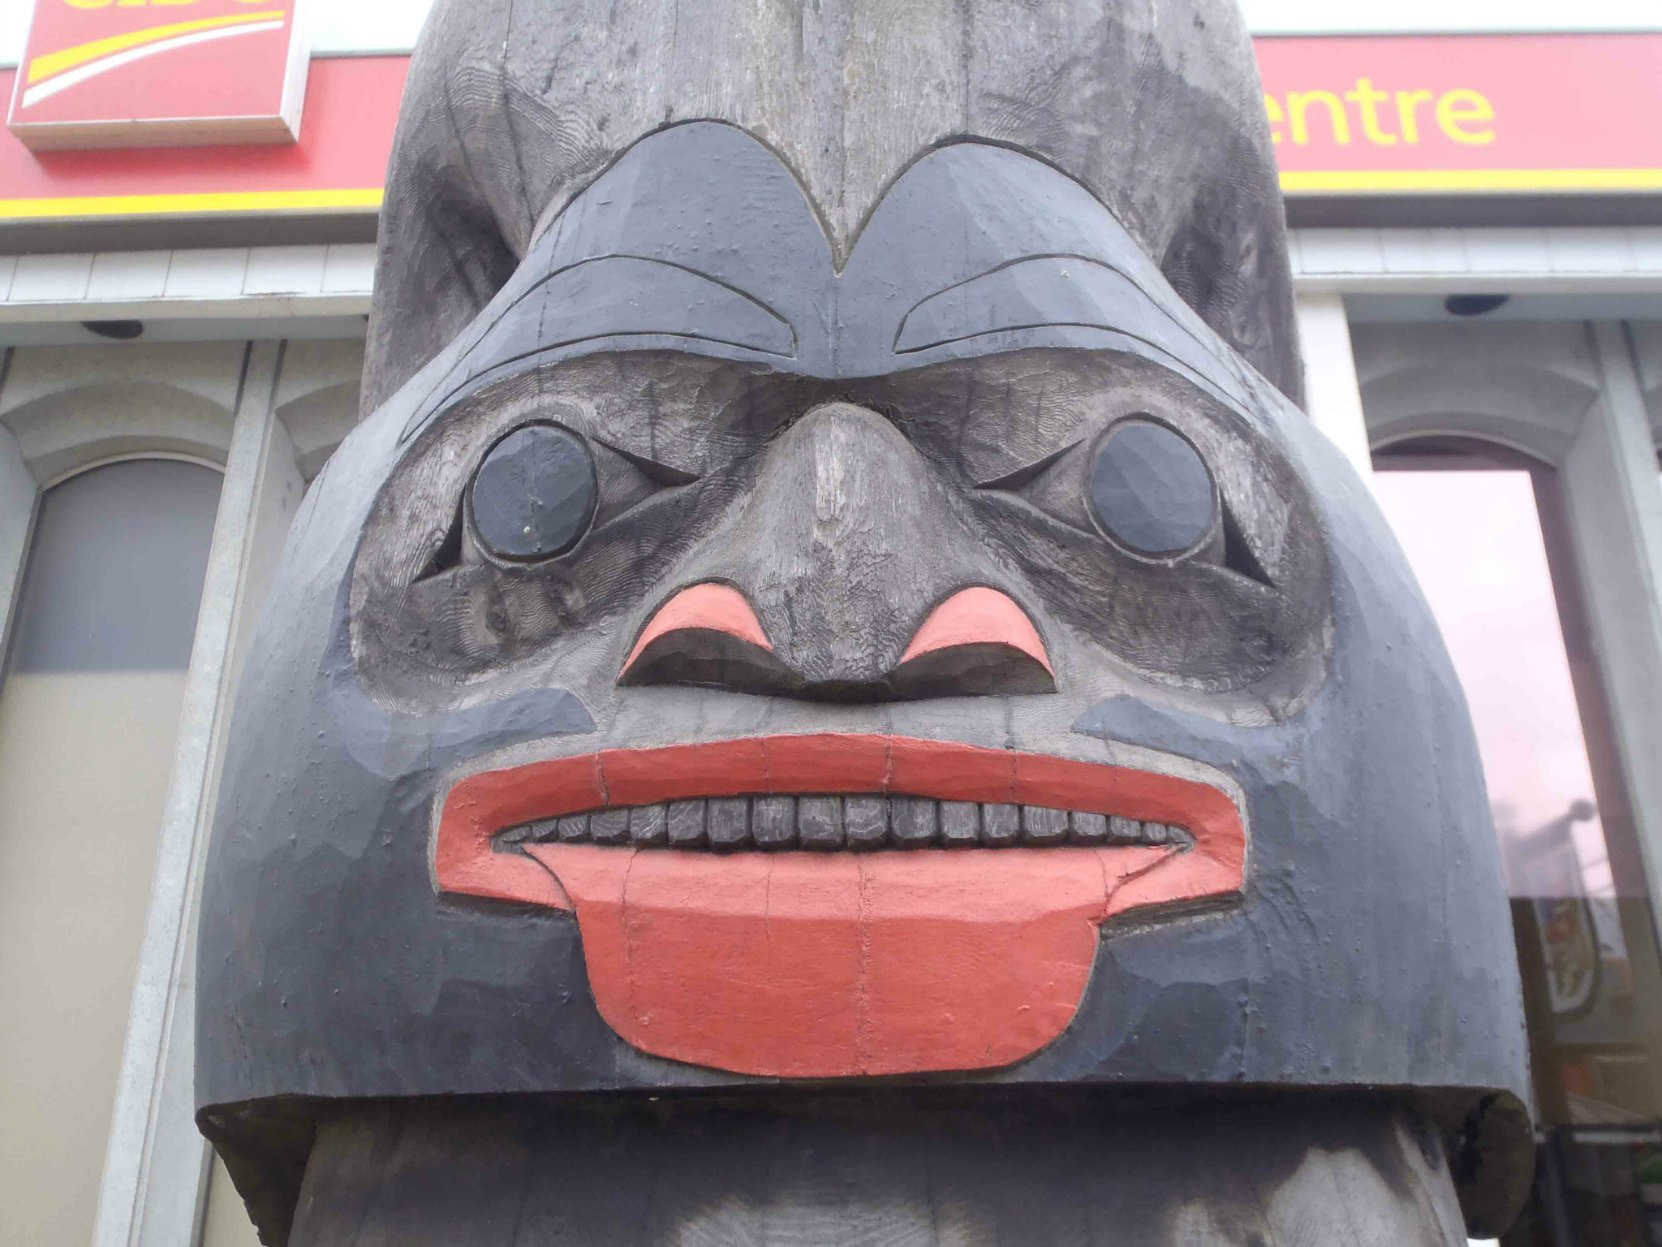 Harvest Time totem pole, North Wind figure, Station Street and Craig Street, Duncan, B.C.